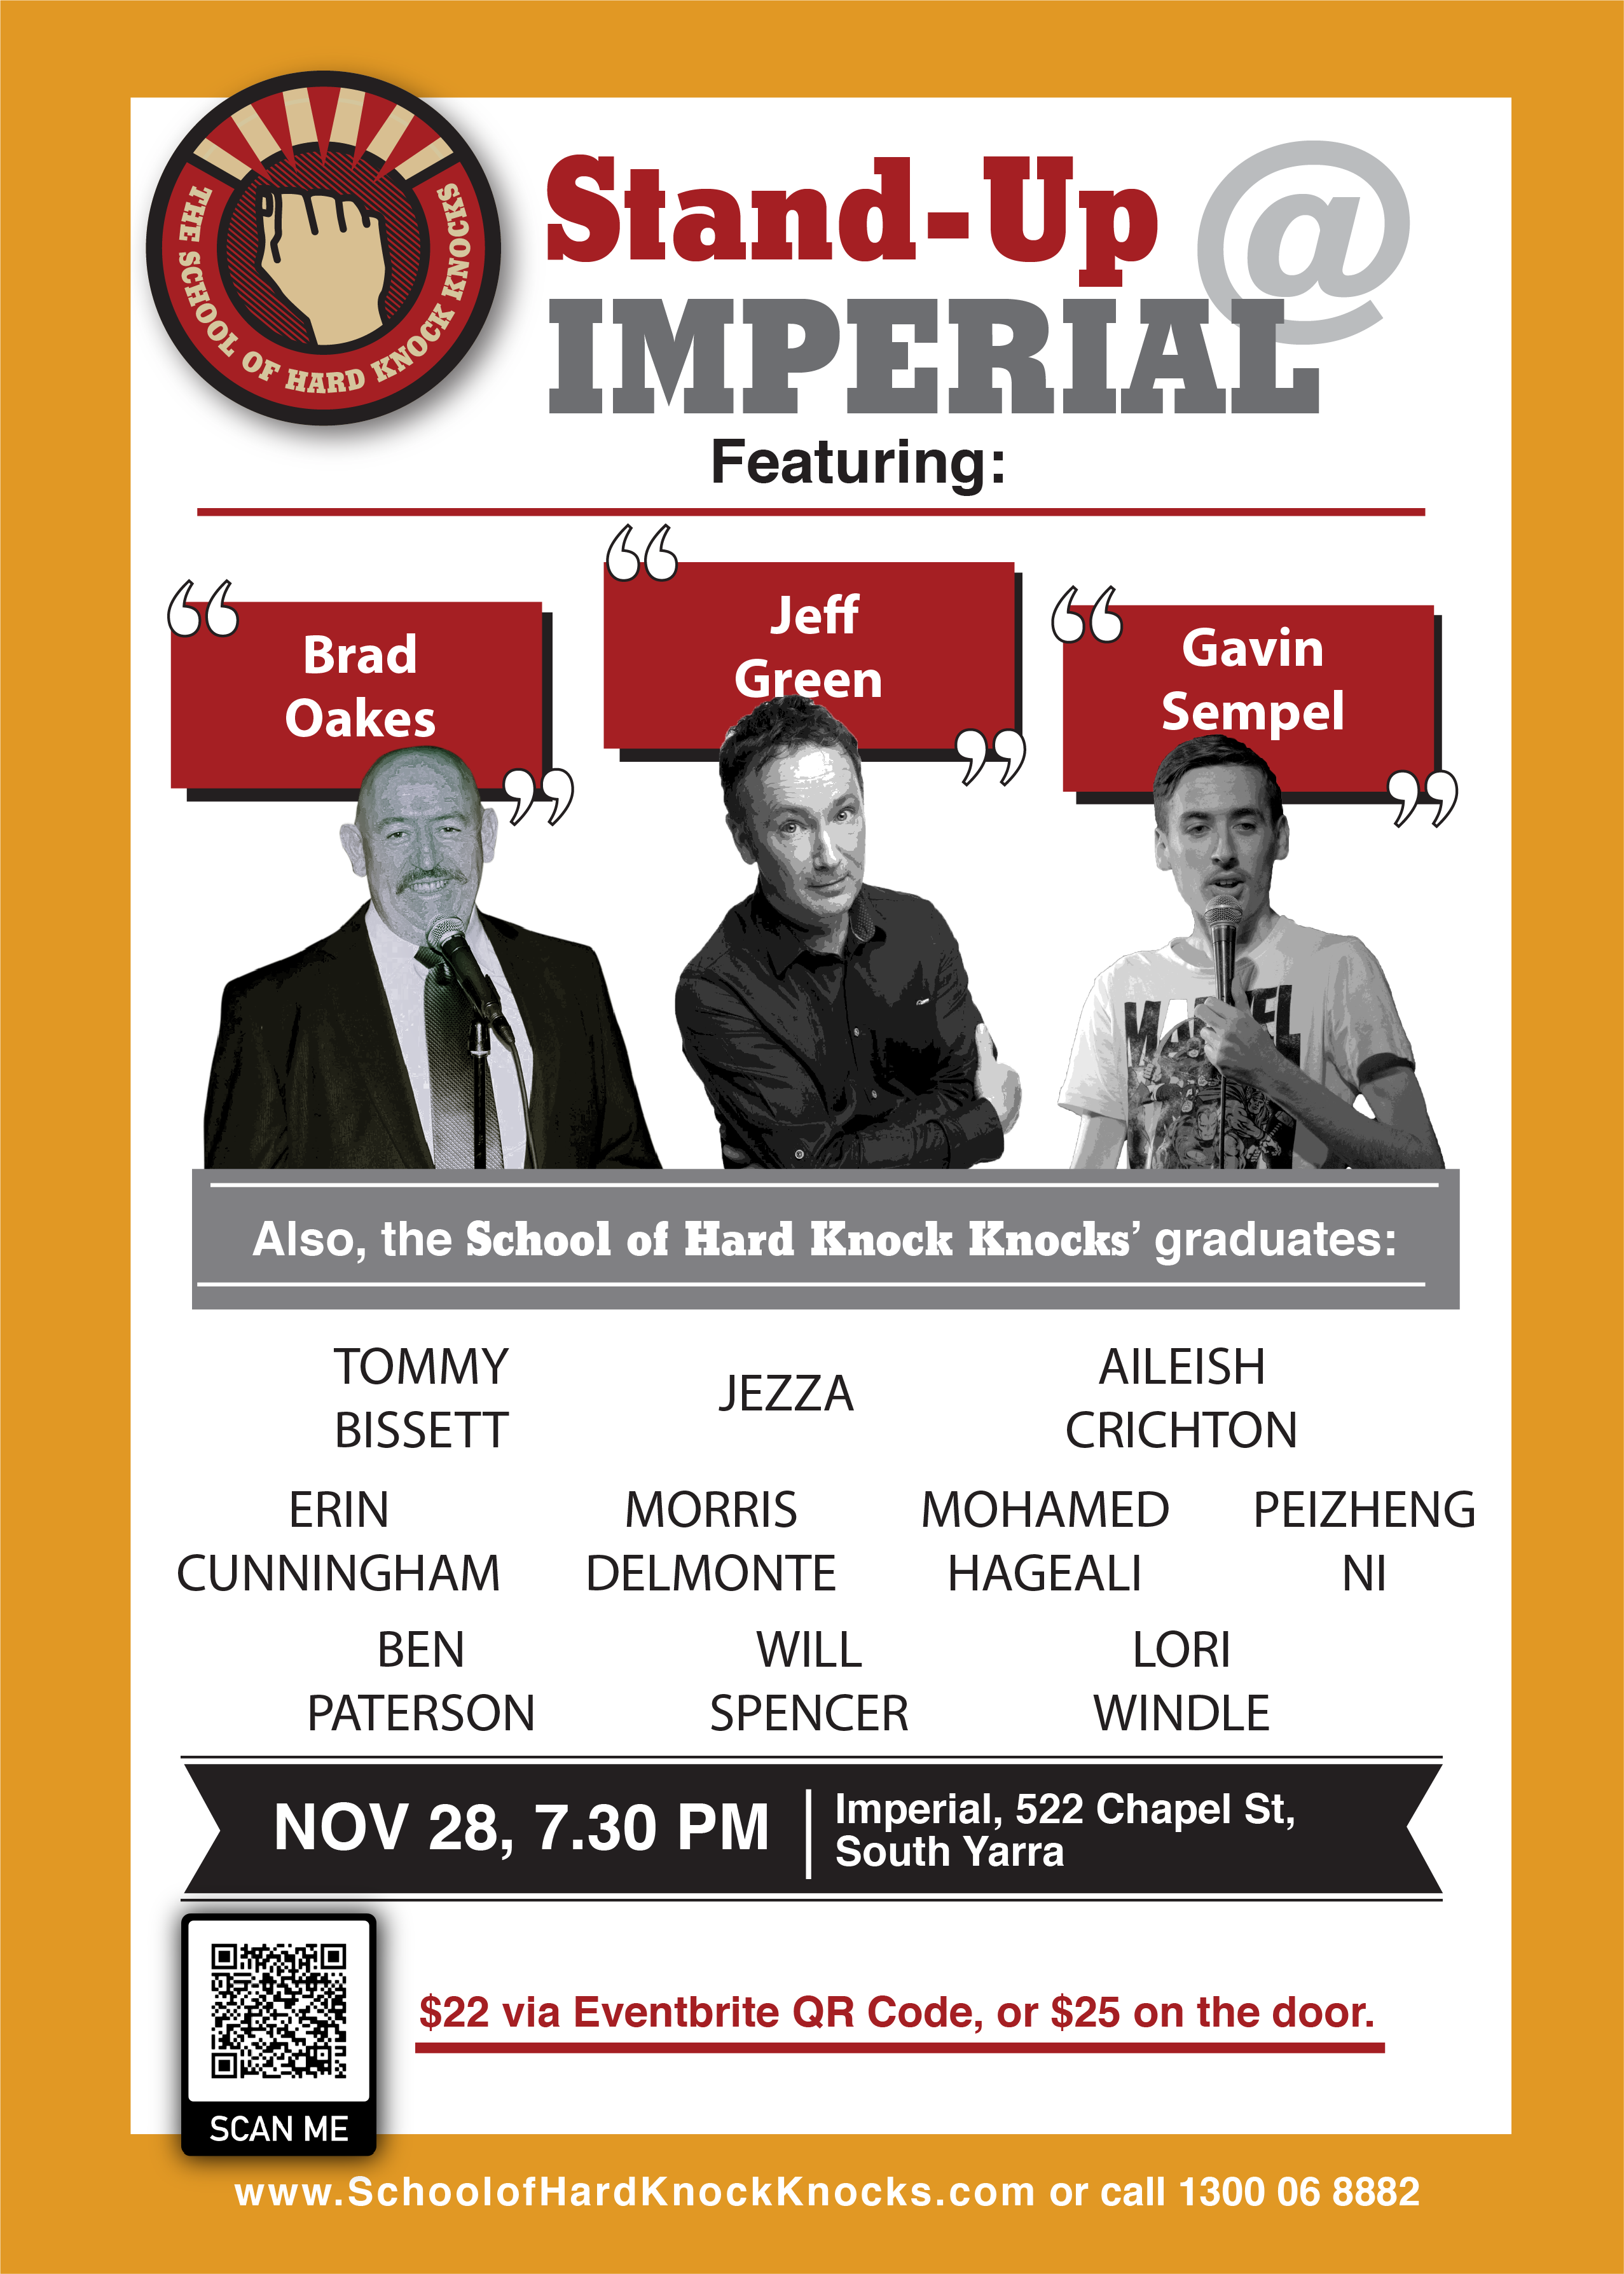 Stand-up comedy at Imperial